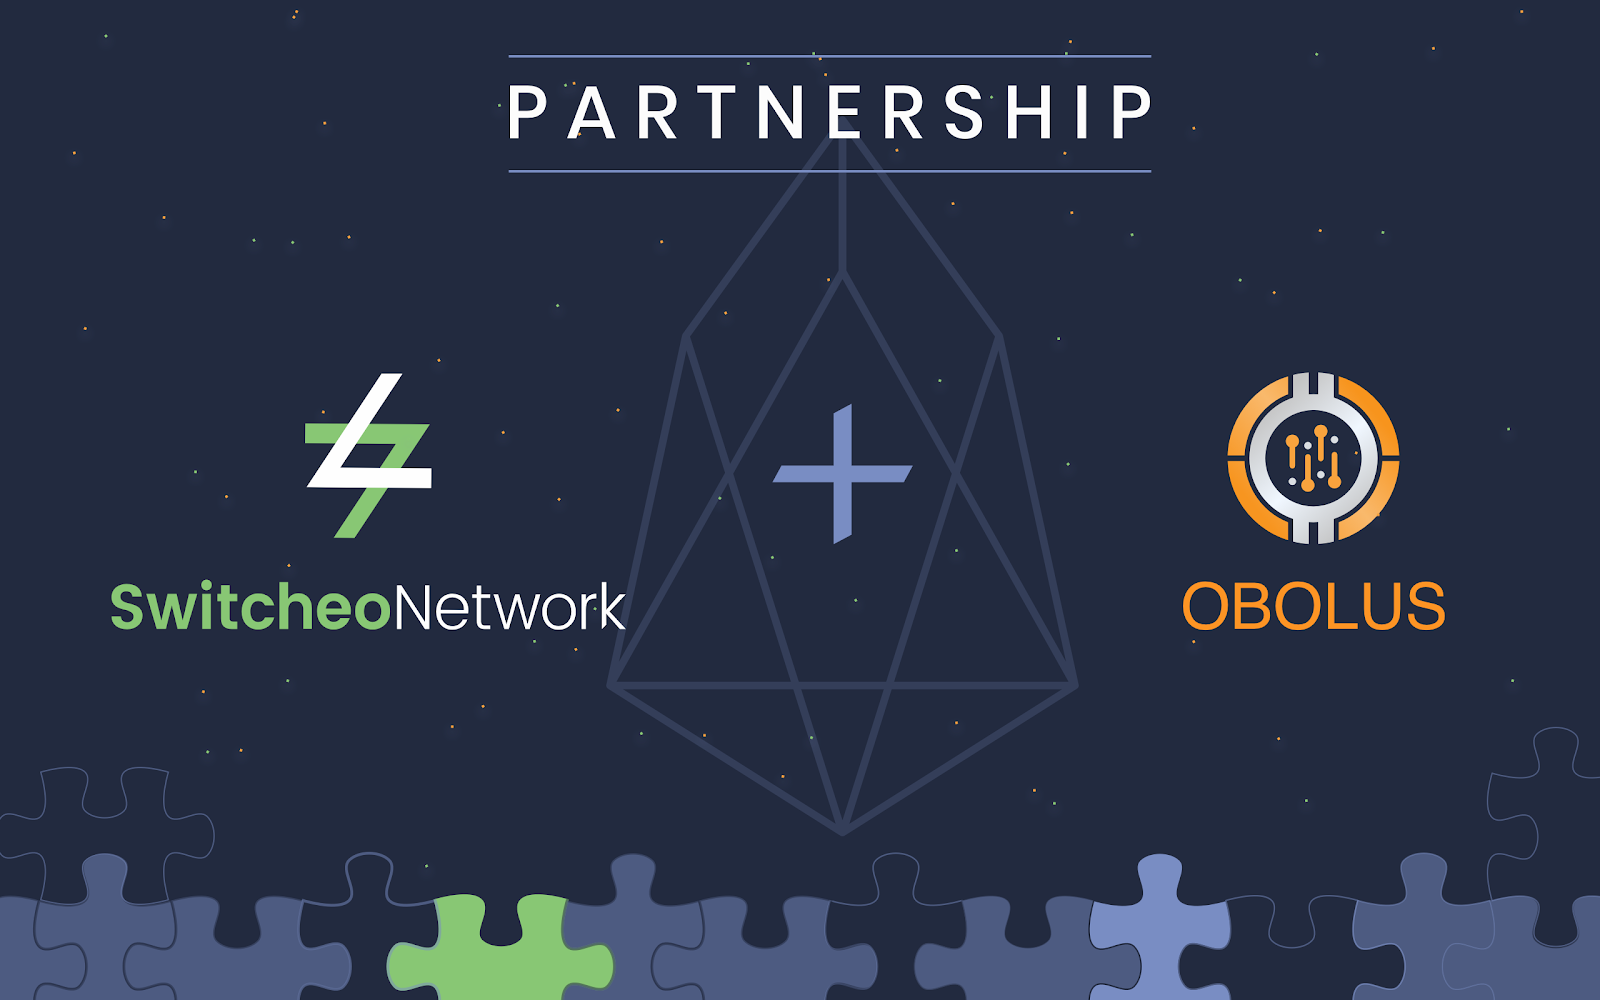 OBOLUS - On April 16th 2019, Switcheo announced a strategic partnership with Obolus — a research and development company that provides solutions in the finance and blockchain sectors. This partnership made the EOS DEX a reality, enabling Switcheo users to trade on the EOS blockchain on Switcheo Exchange.